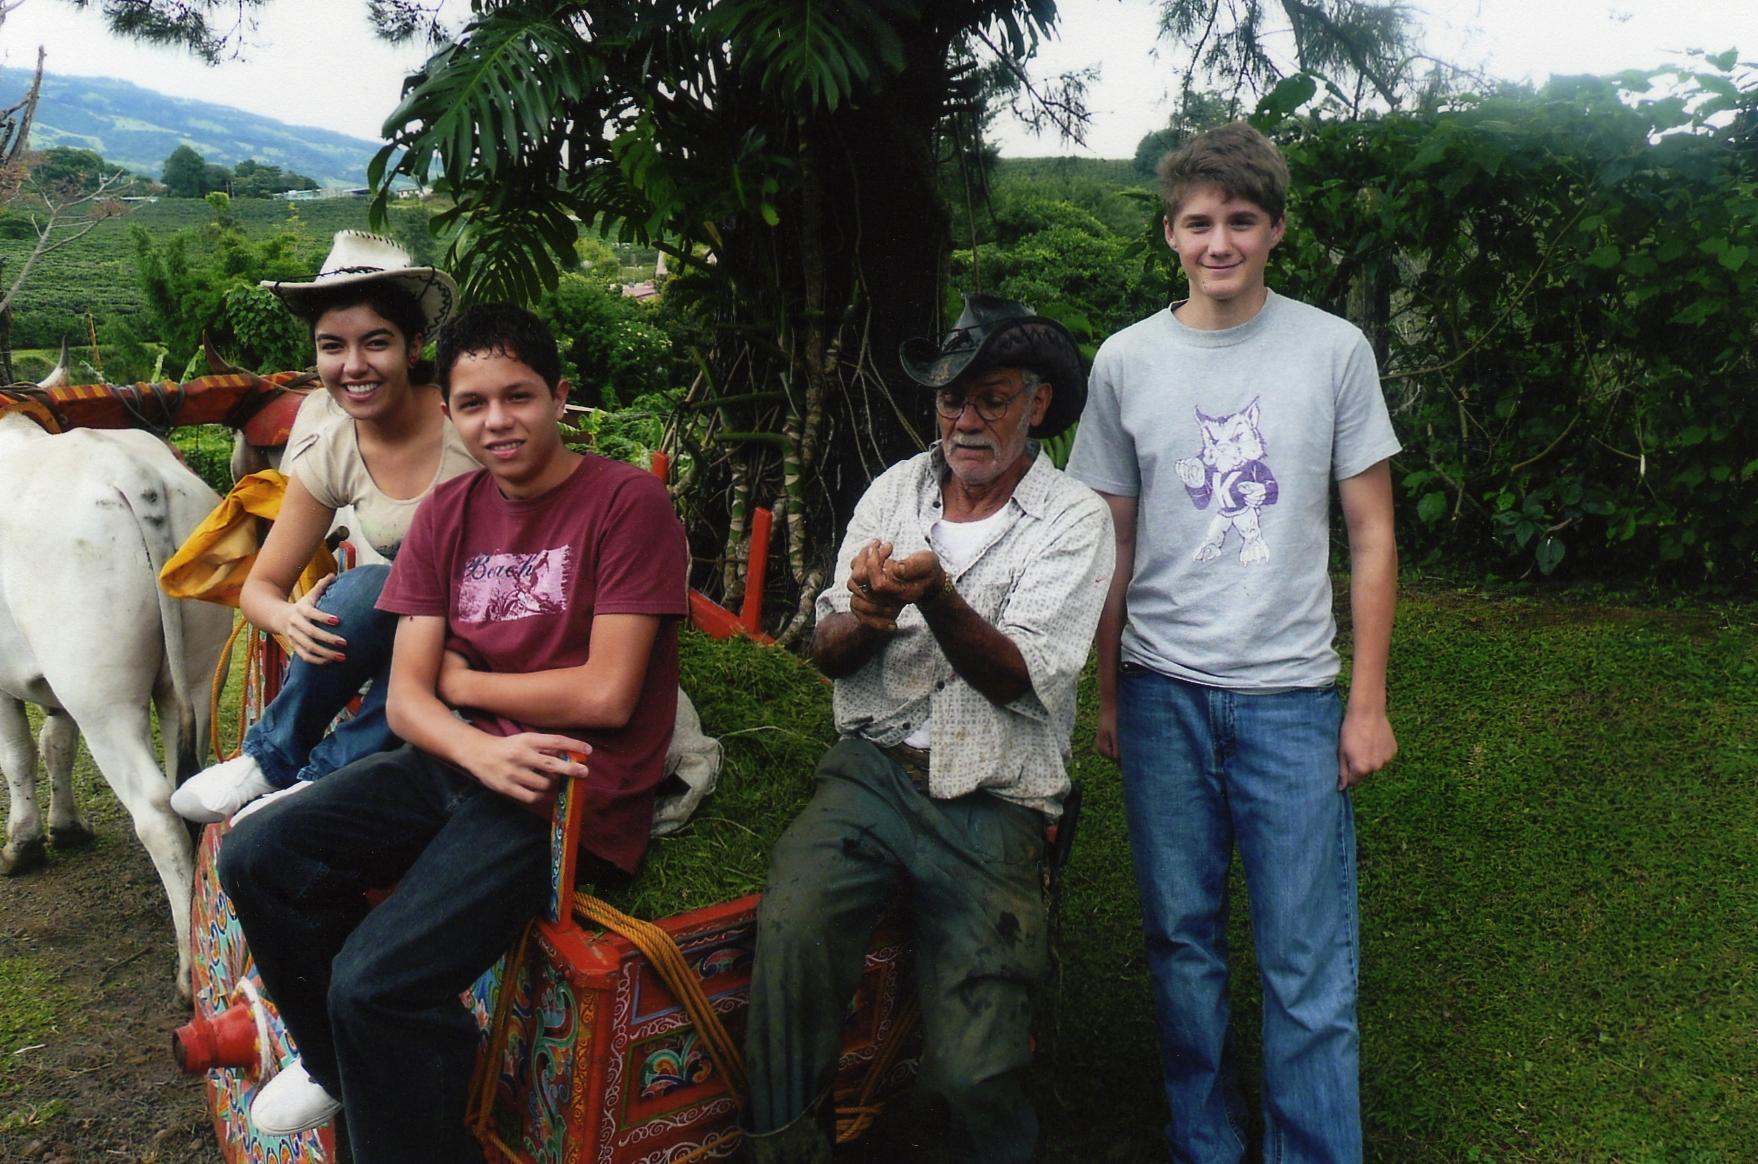 World Citizenship>Steuart Hensleigh with host family in Costa Rica.